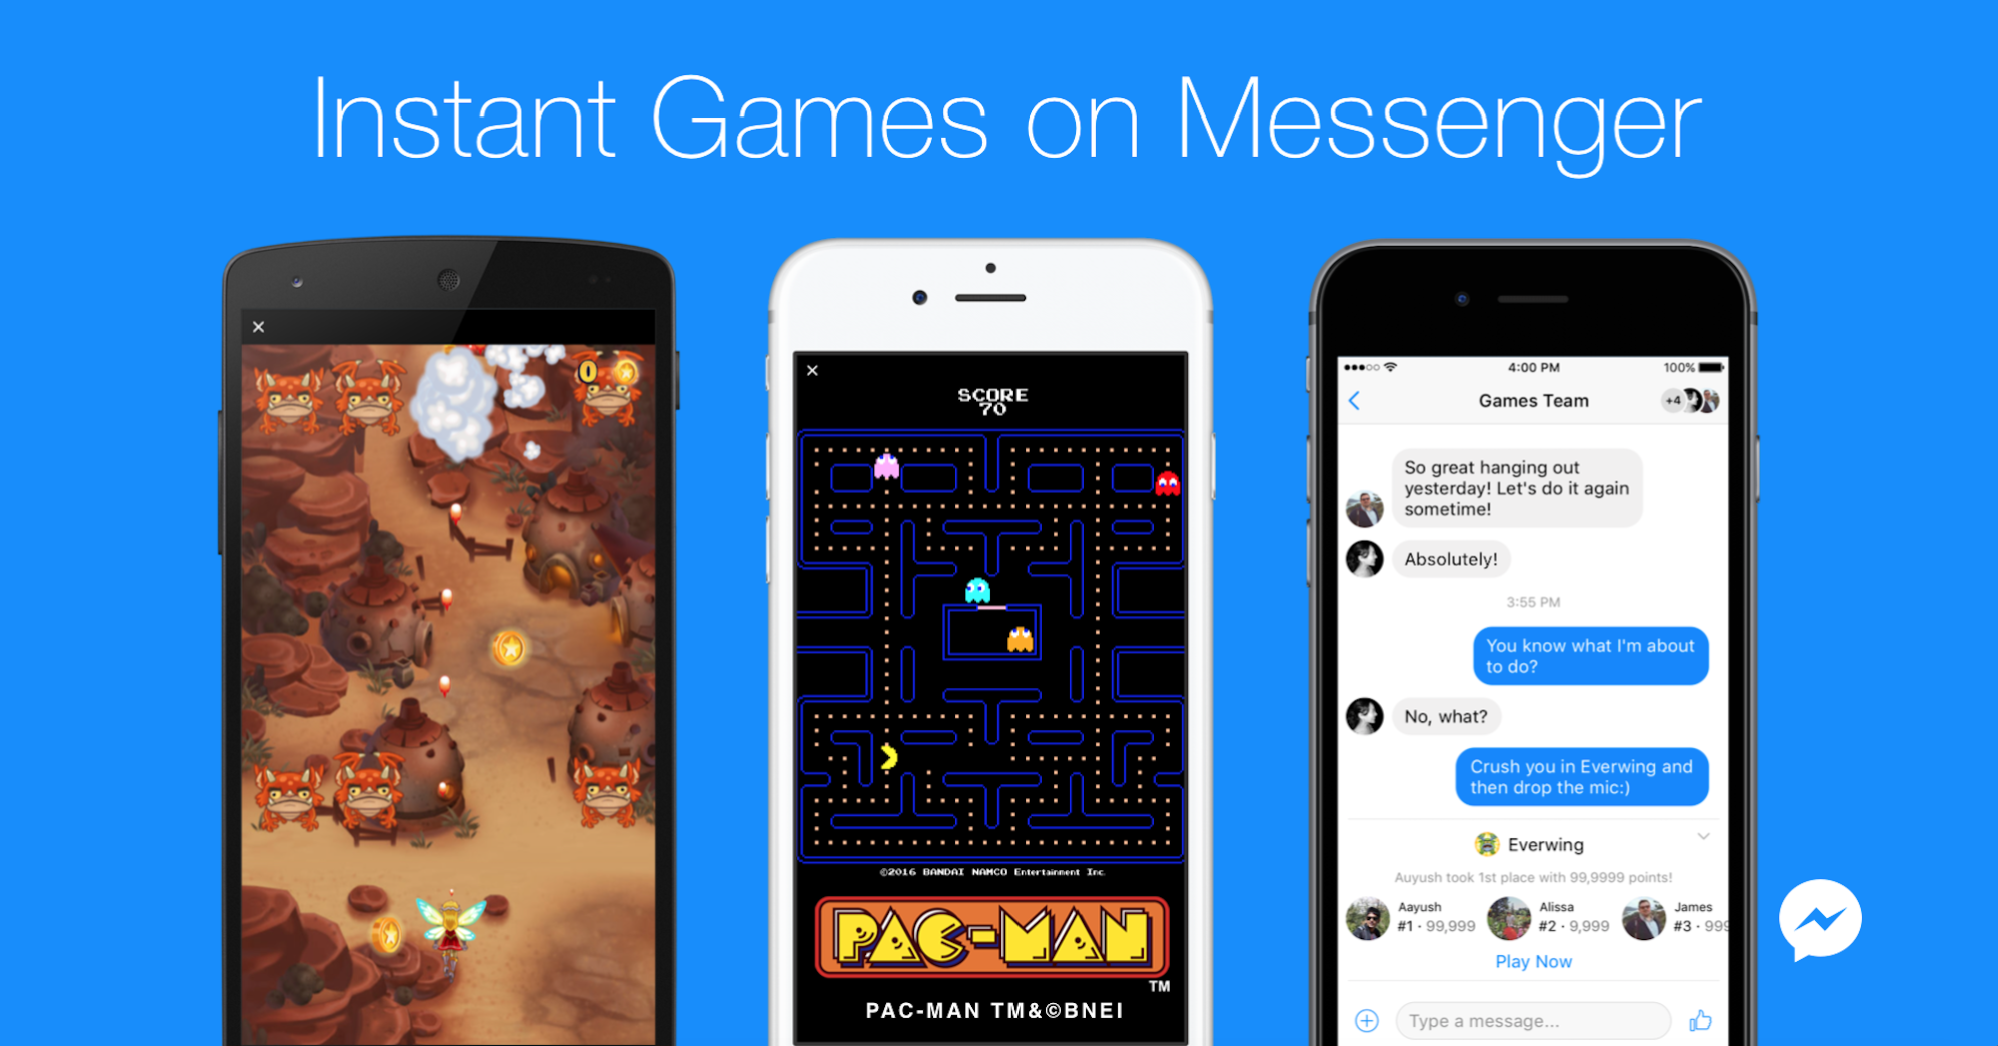 Facebook messenger launches instant games techcrunch kristyandbryce Choice Image